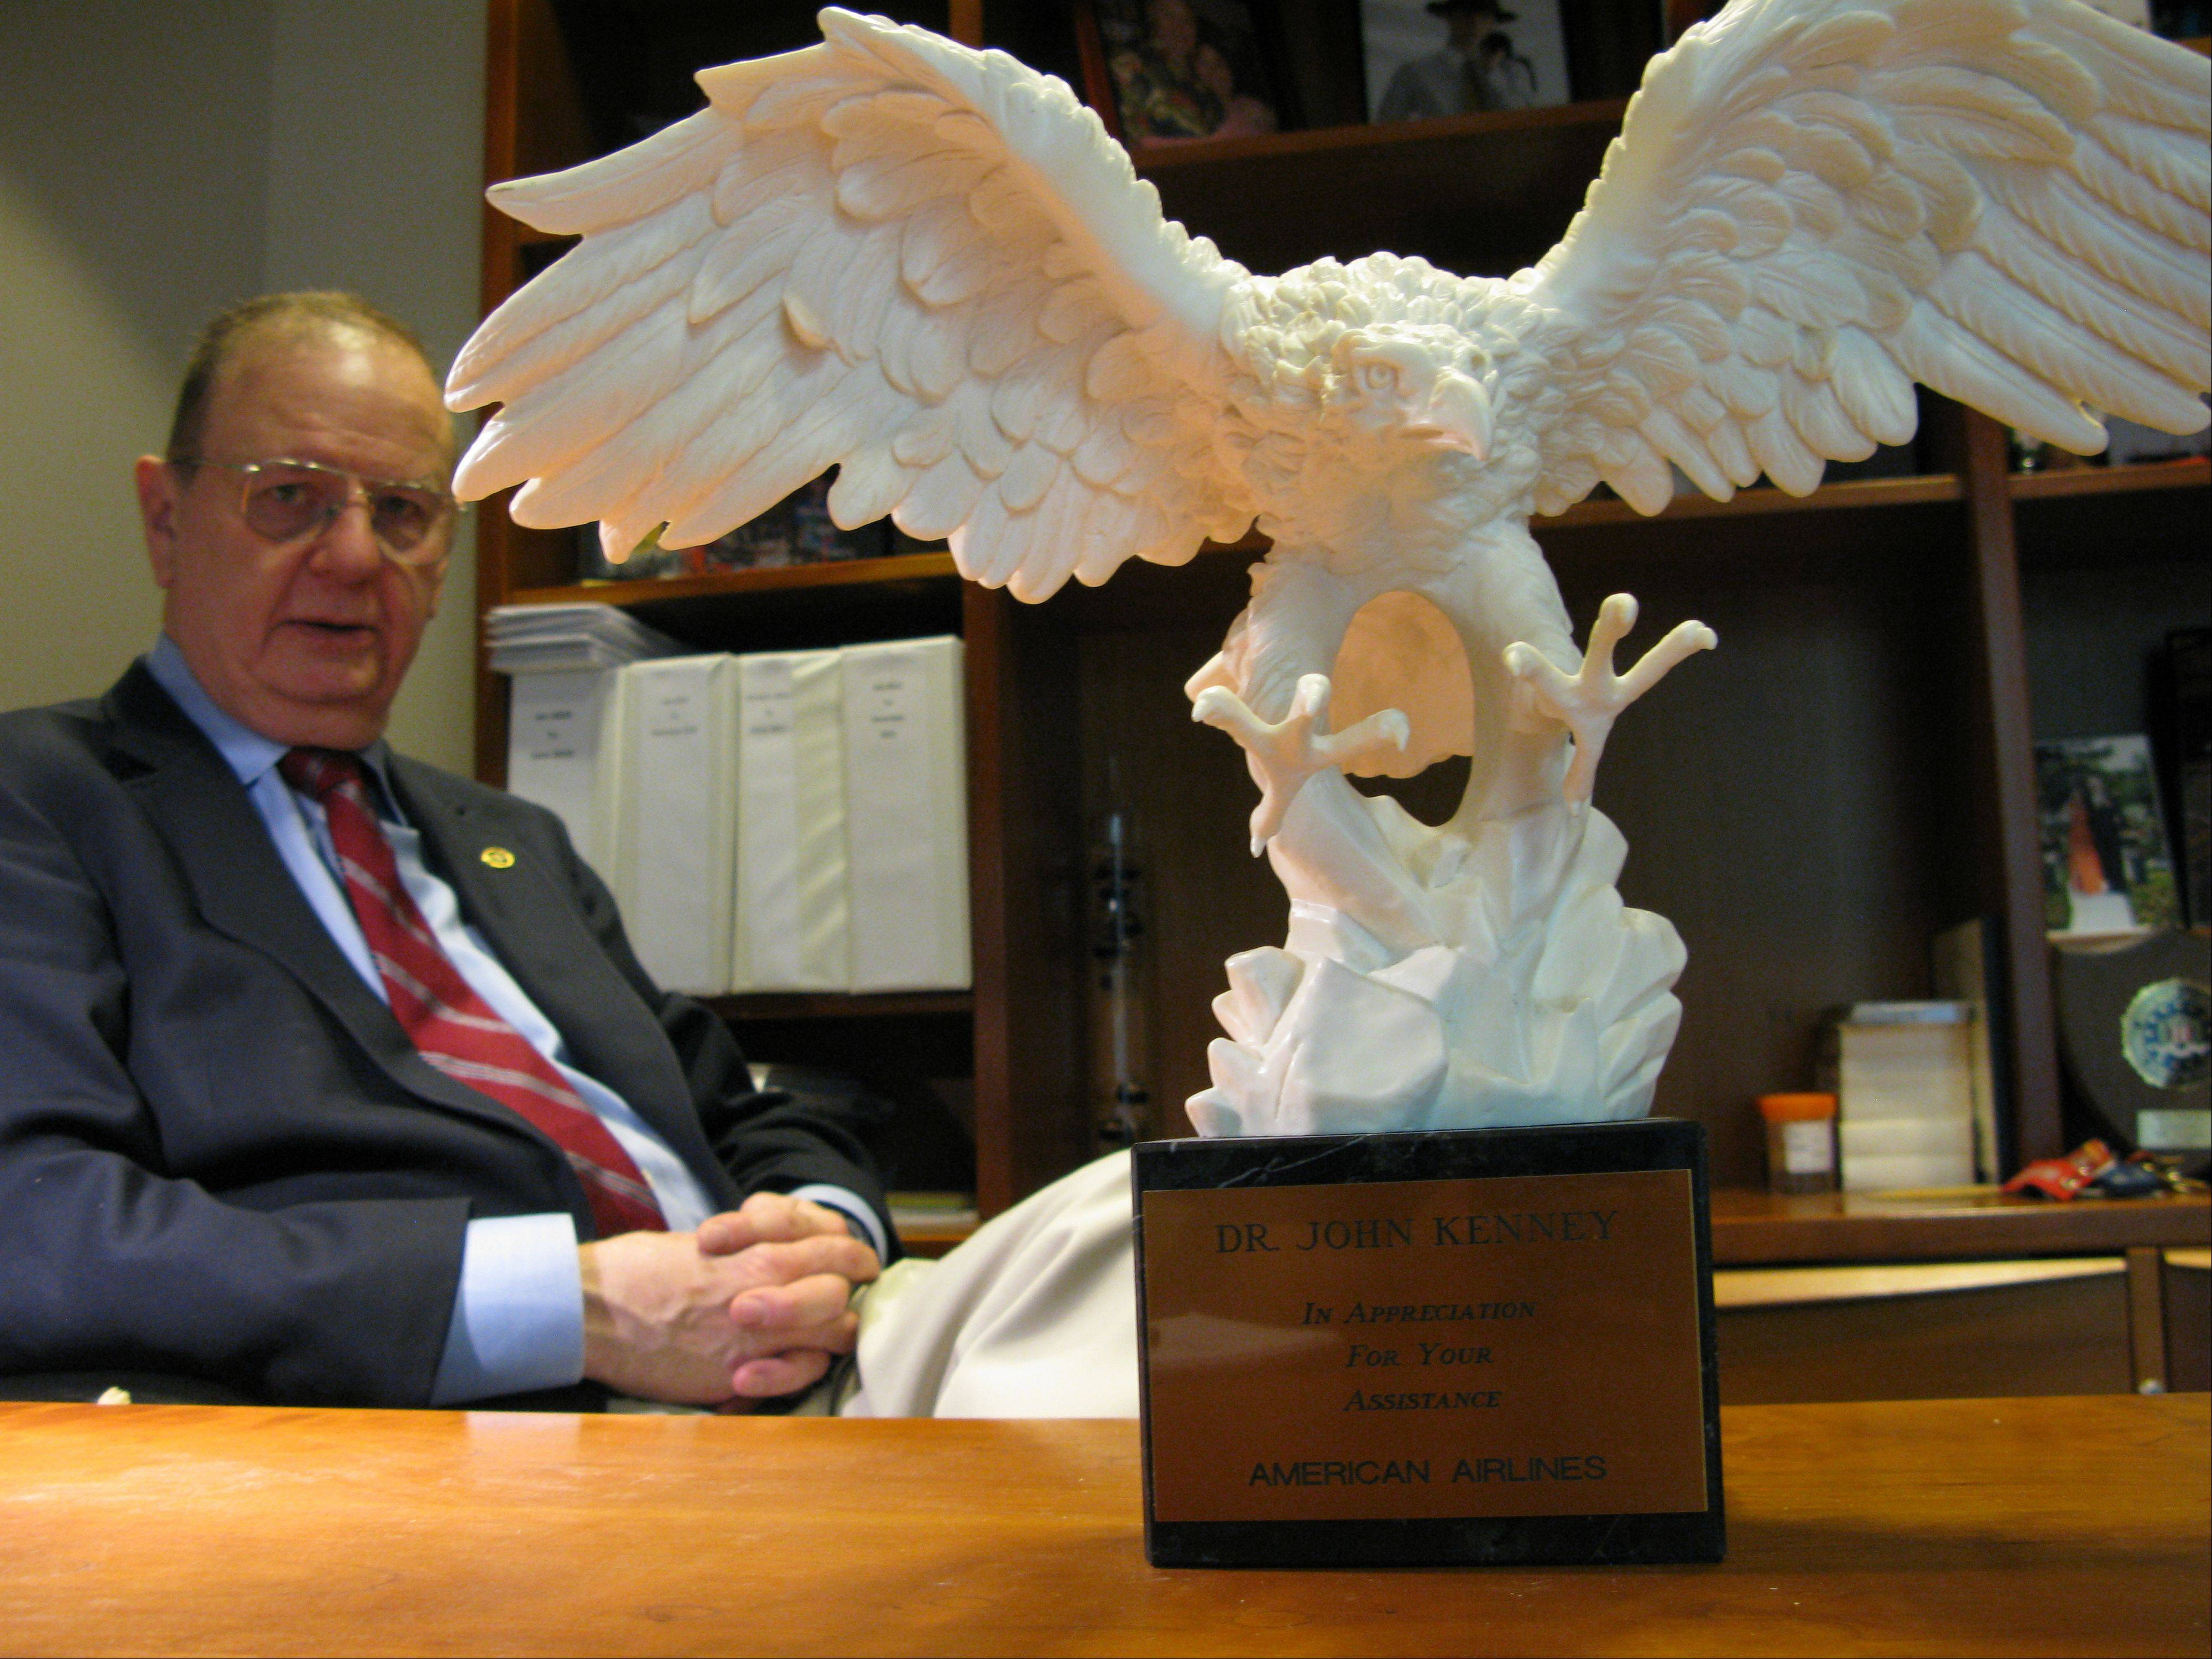 Dr. John Kenney of Park Ridge was among a team of 30 forensic dentists tapped to identify the 273 victims. American Airlines awarded Kenney the eagle statue for his work.